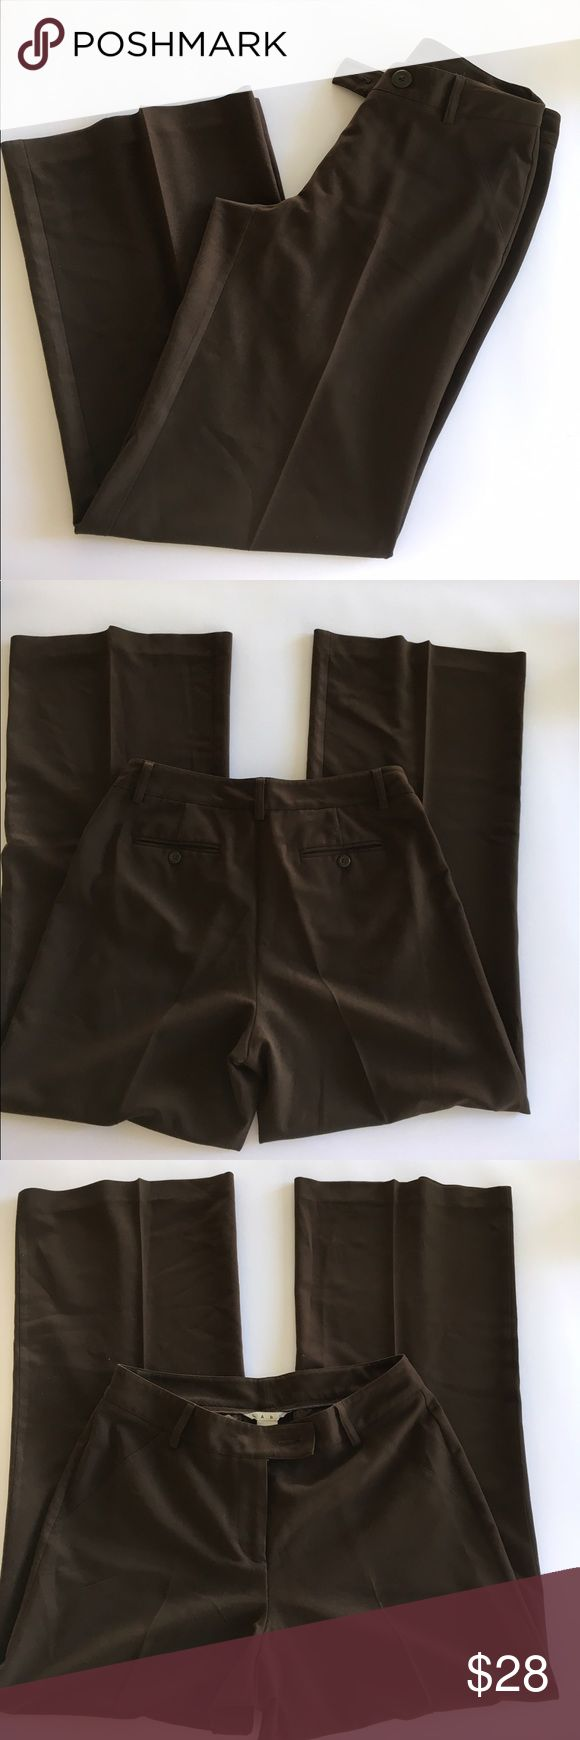 CAbi Dress Slacks Pants Trousers Brown Size 6 #724 these are in excellent used condition. Work pants inseam measures 31 inches waist measures approximately 30 inches. 74% polyester 22% viscose 4% spandex. CAbi Pants Straight Leg